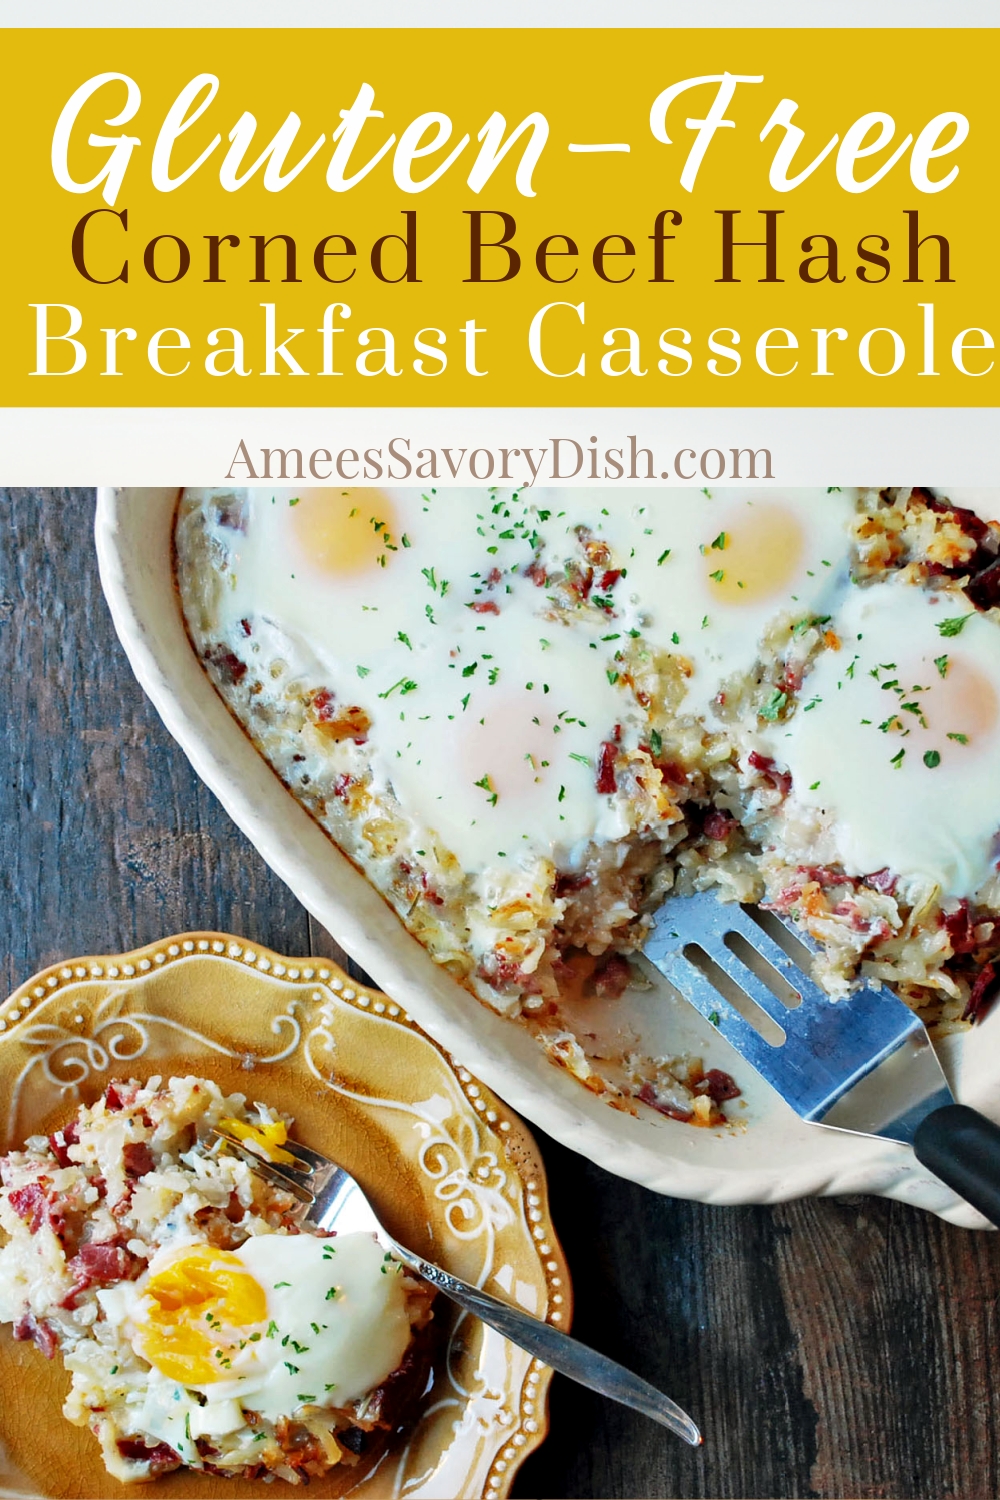 This lightened-up and delicious Corned Beef Hash Breakfast Casserole is a combination of cheese, hashbrown potatoes, corned beef, fresh herbs, and eggs. #breakfastcasserole #cornedbeefrecipe #cornedbeefhash #eggcasserole via @Ameessavorydish